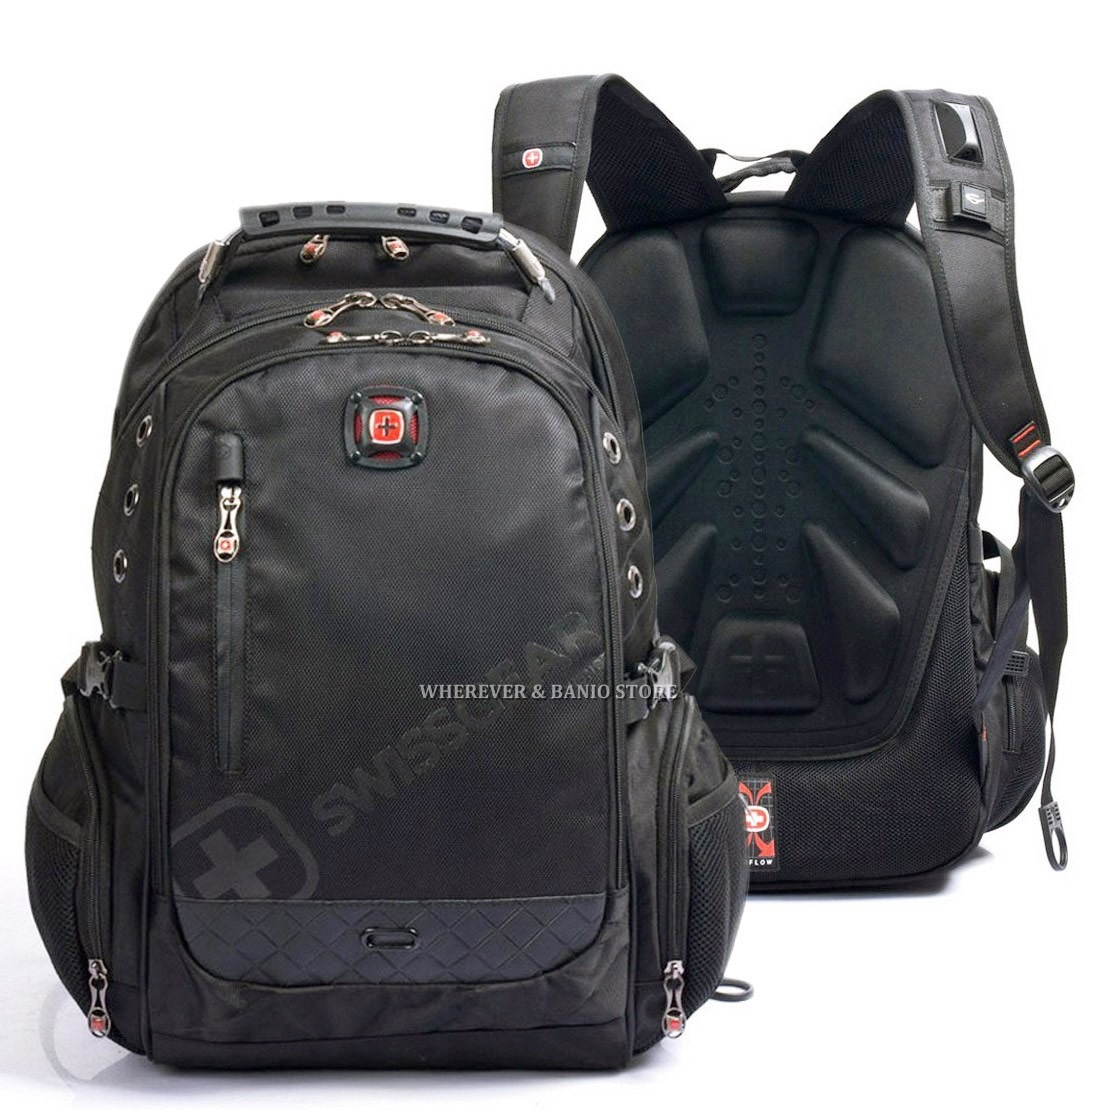 Swiss Gear Laptop Backpack India - Crazy Backpacks